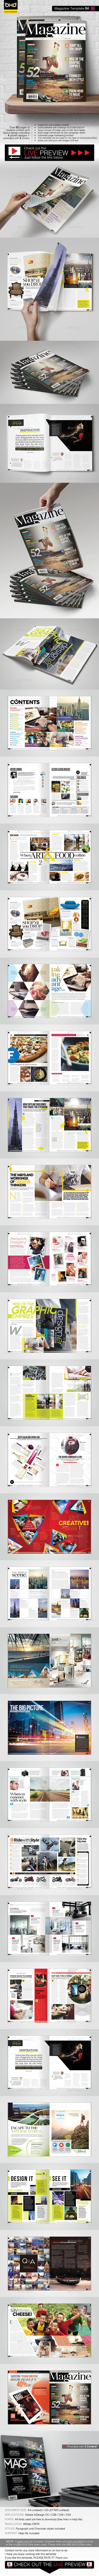 Magazine Template - InDesign 52 Page Layout V5 - #Magazines Print #Templates Download here: https://graphicriver.net/item/magazine-template-indesign-52-page-layout-v5/9342573?ref=alena994